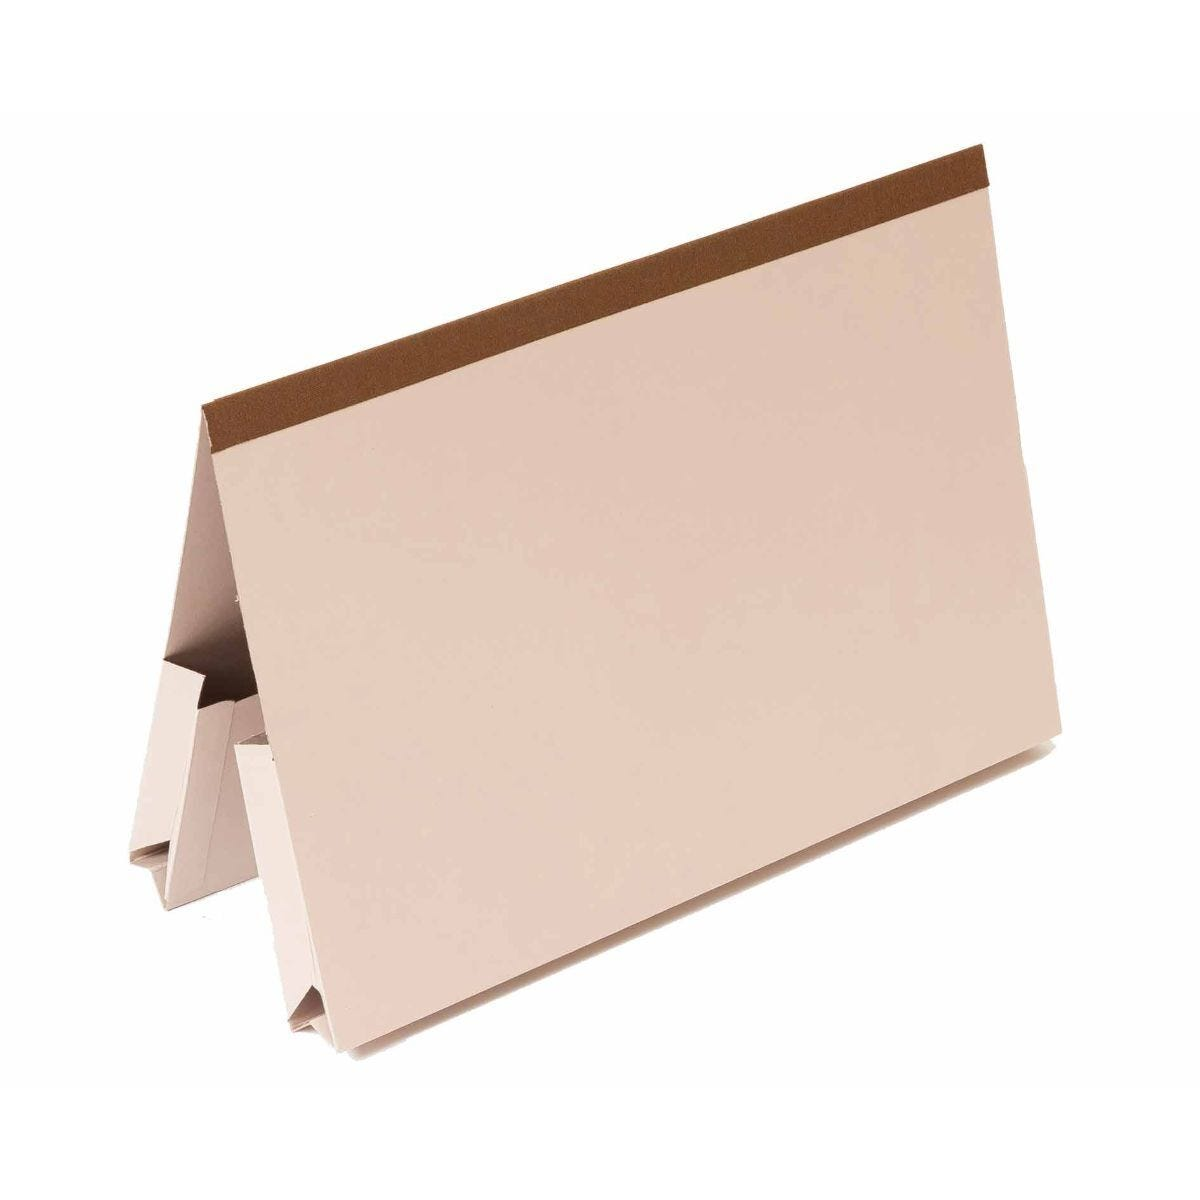 Exacompta Guildhall Reinforced Double Pocket Wallets Foolscap Pack of 25 315gsm Buff